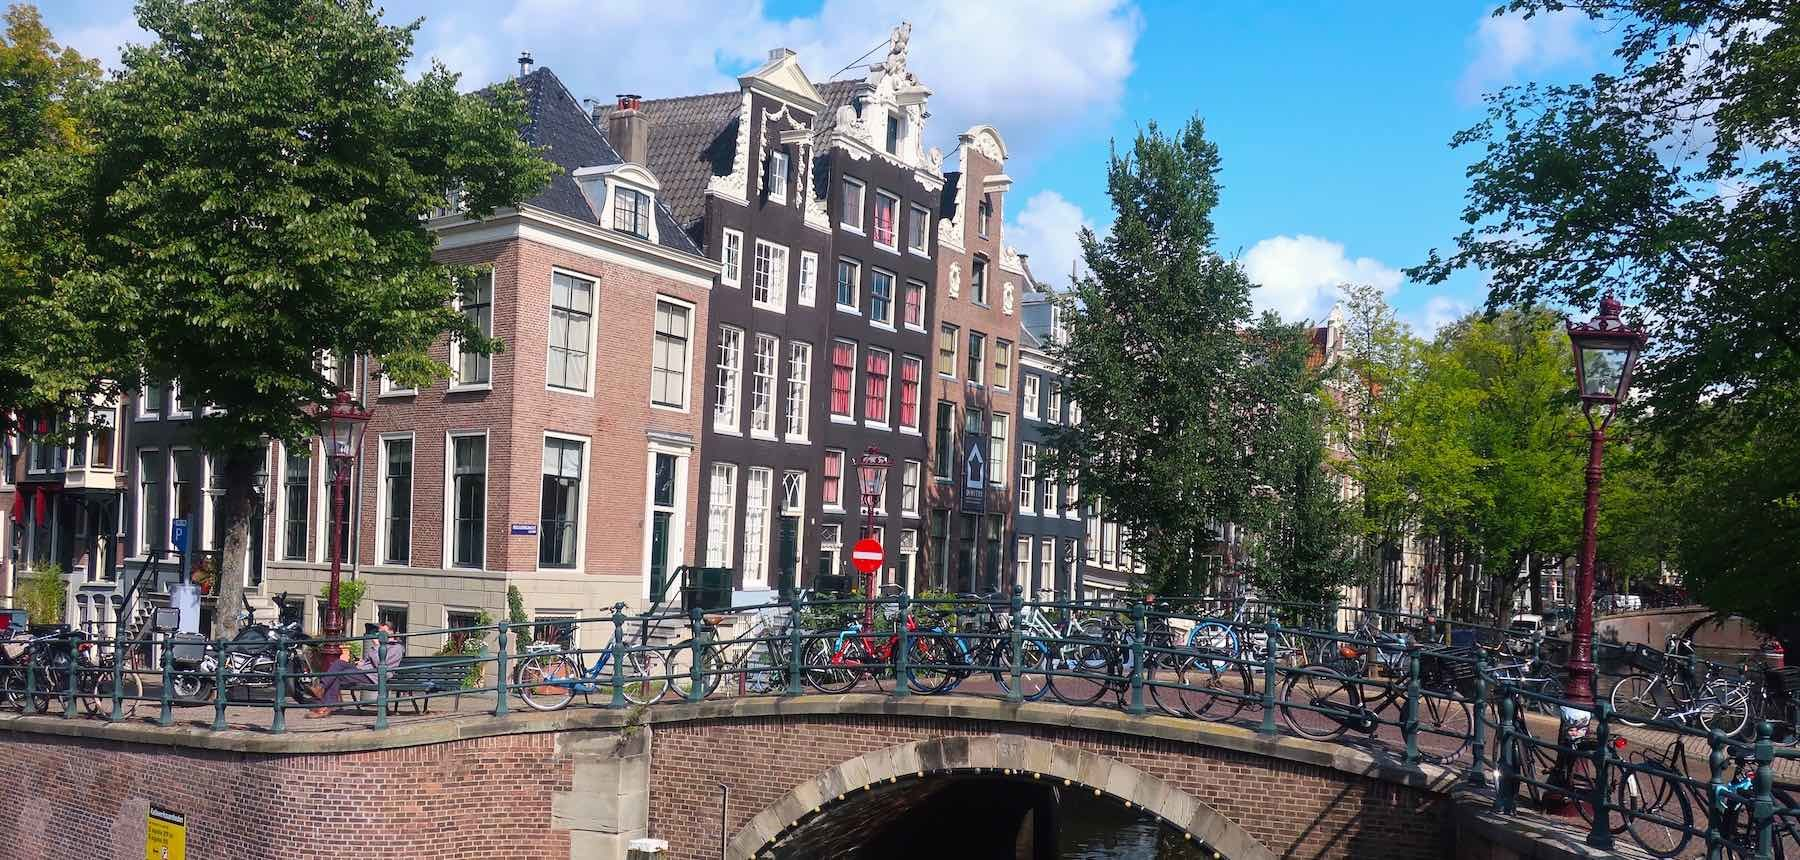 Cheap flight to Amsterdam options